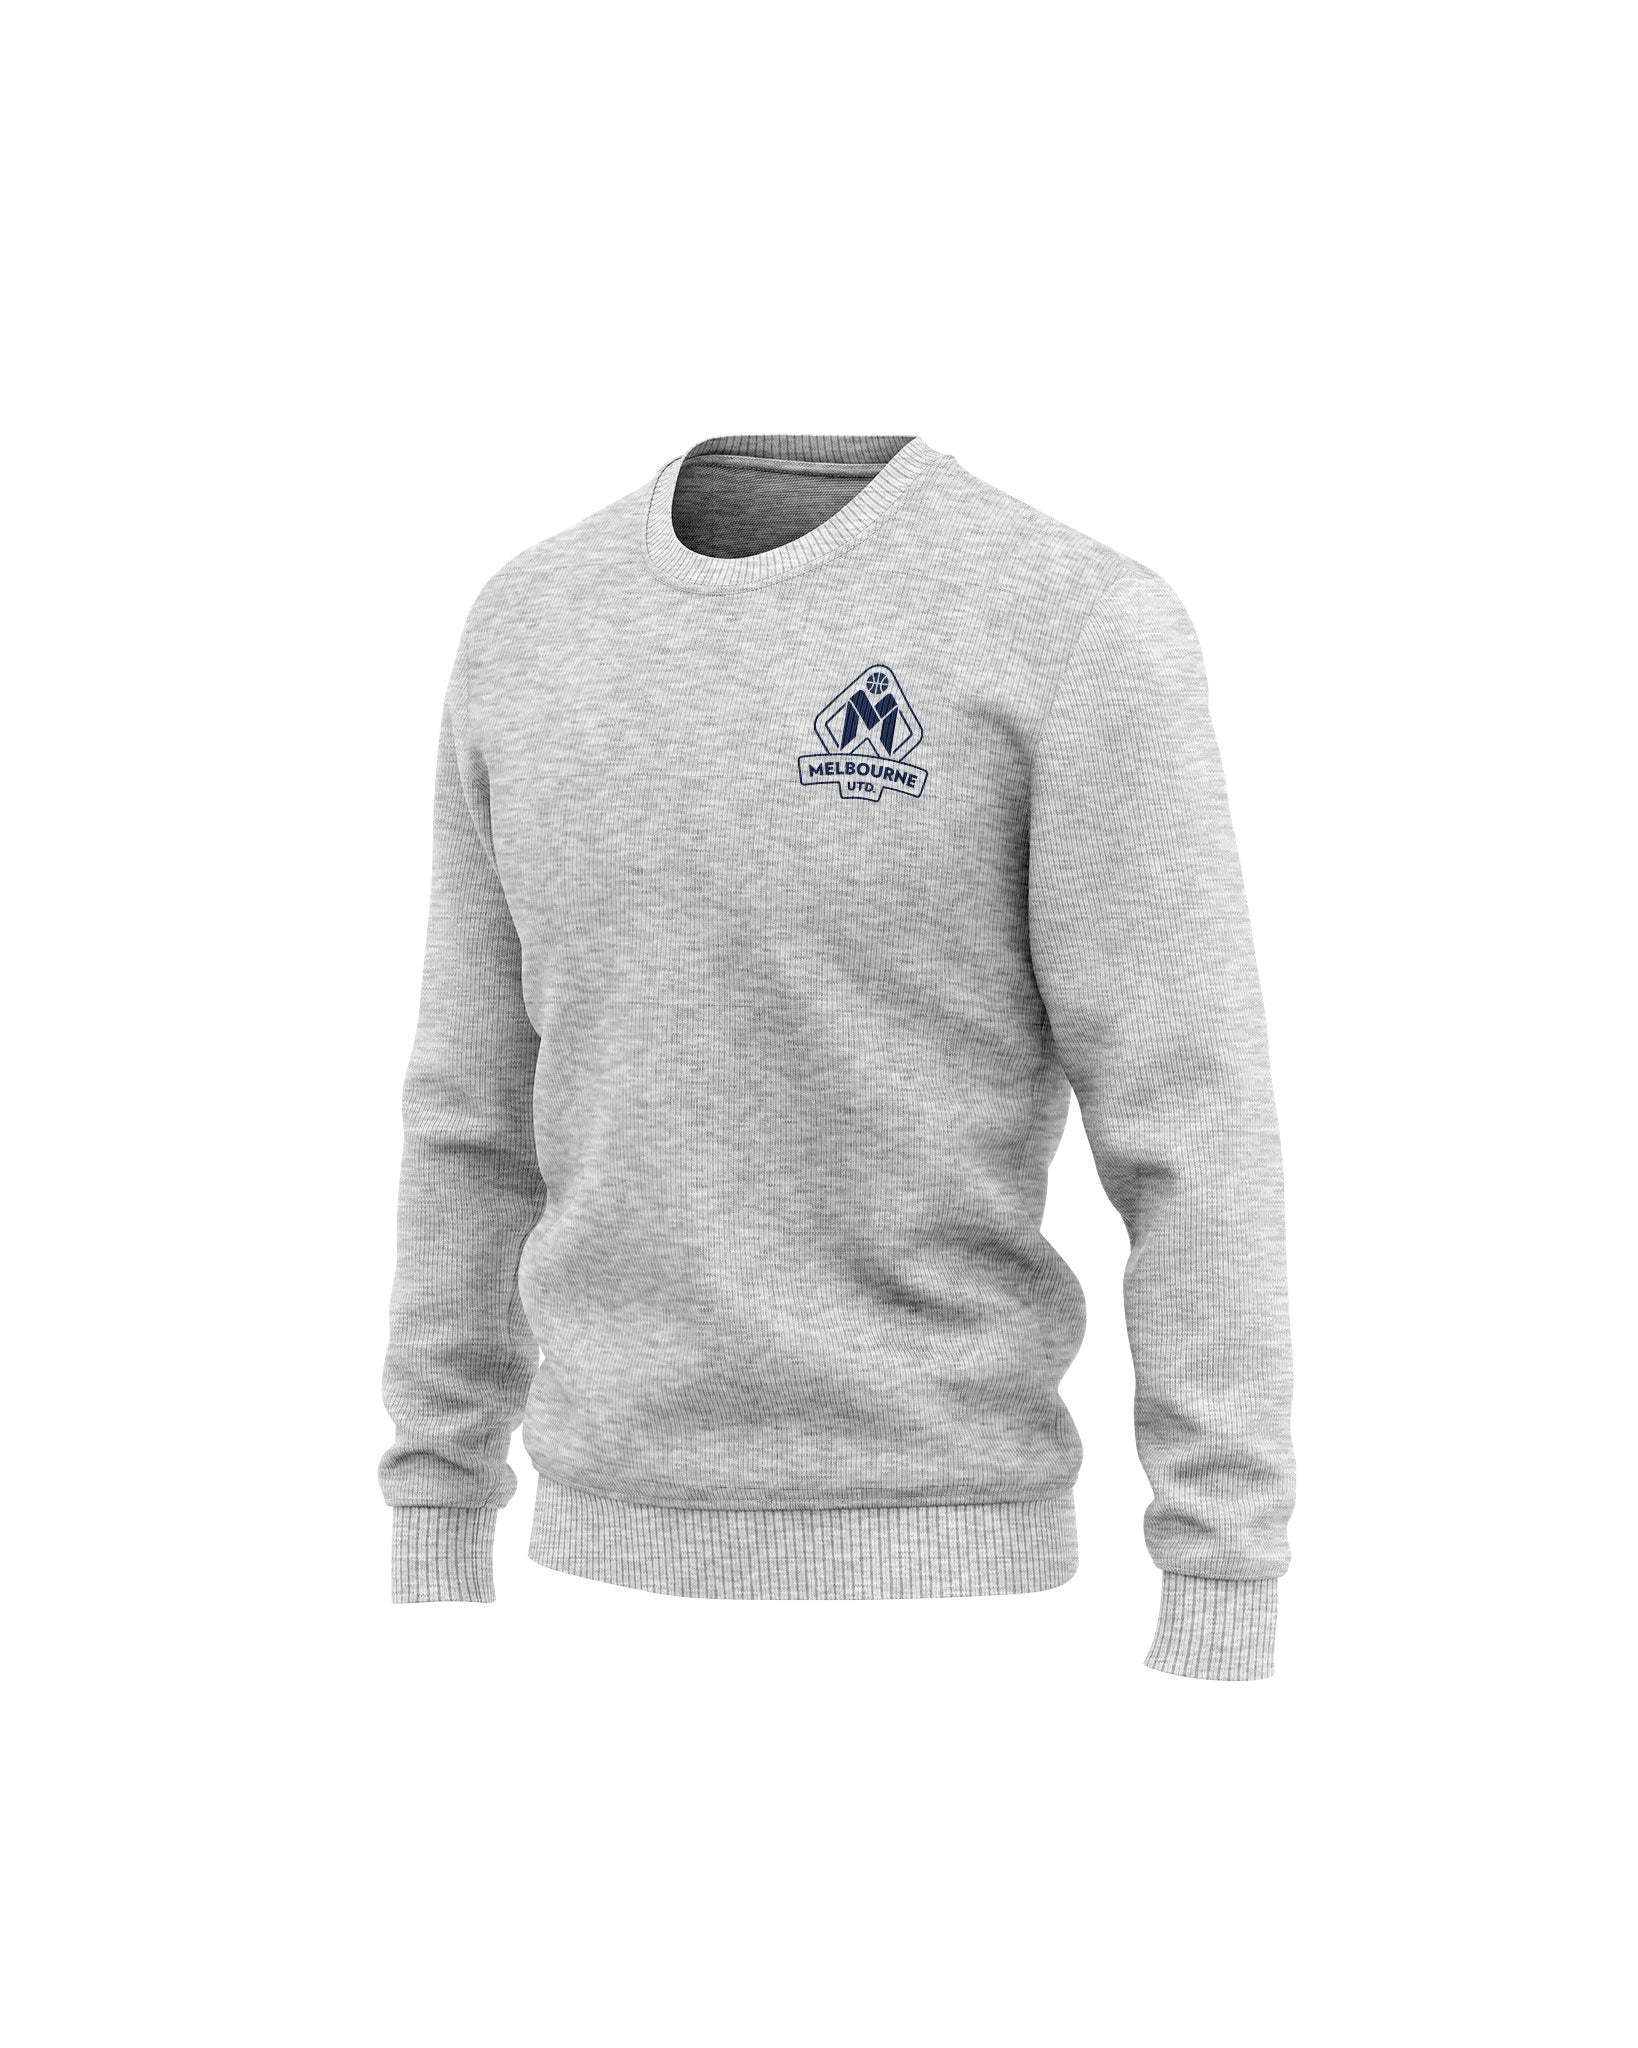 Melbourne United 20/21 Crew Neck Sweatshirt Grey